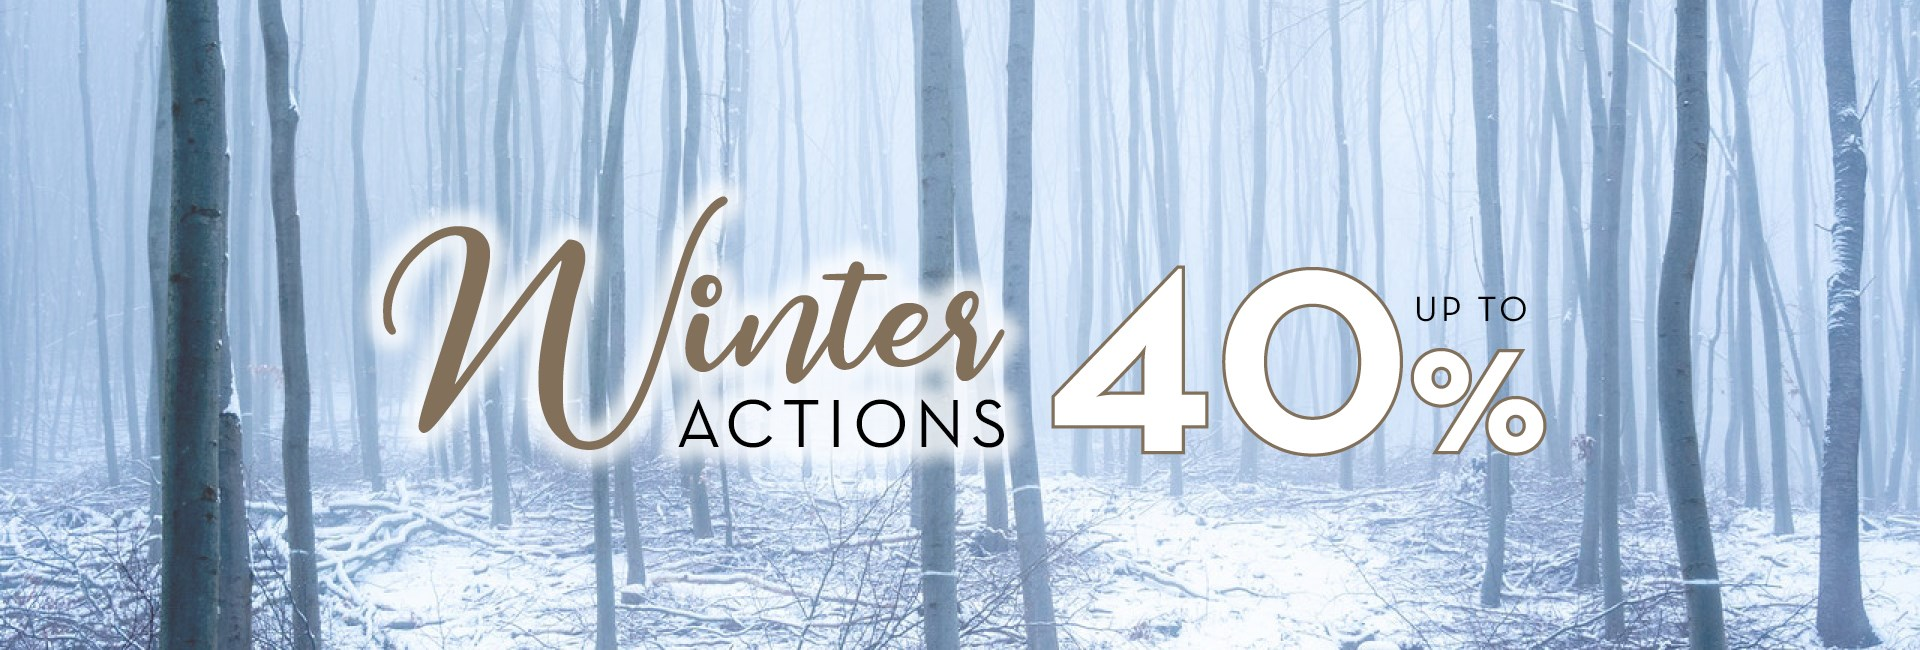 Winter Actions